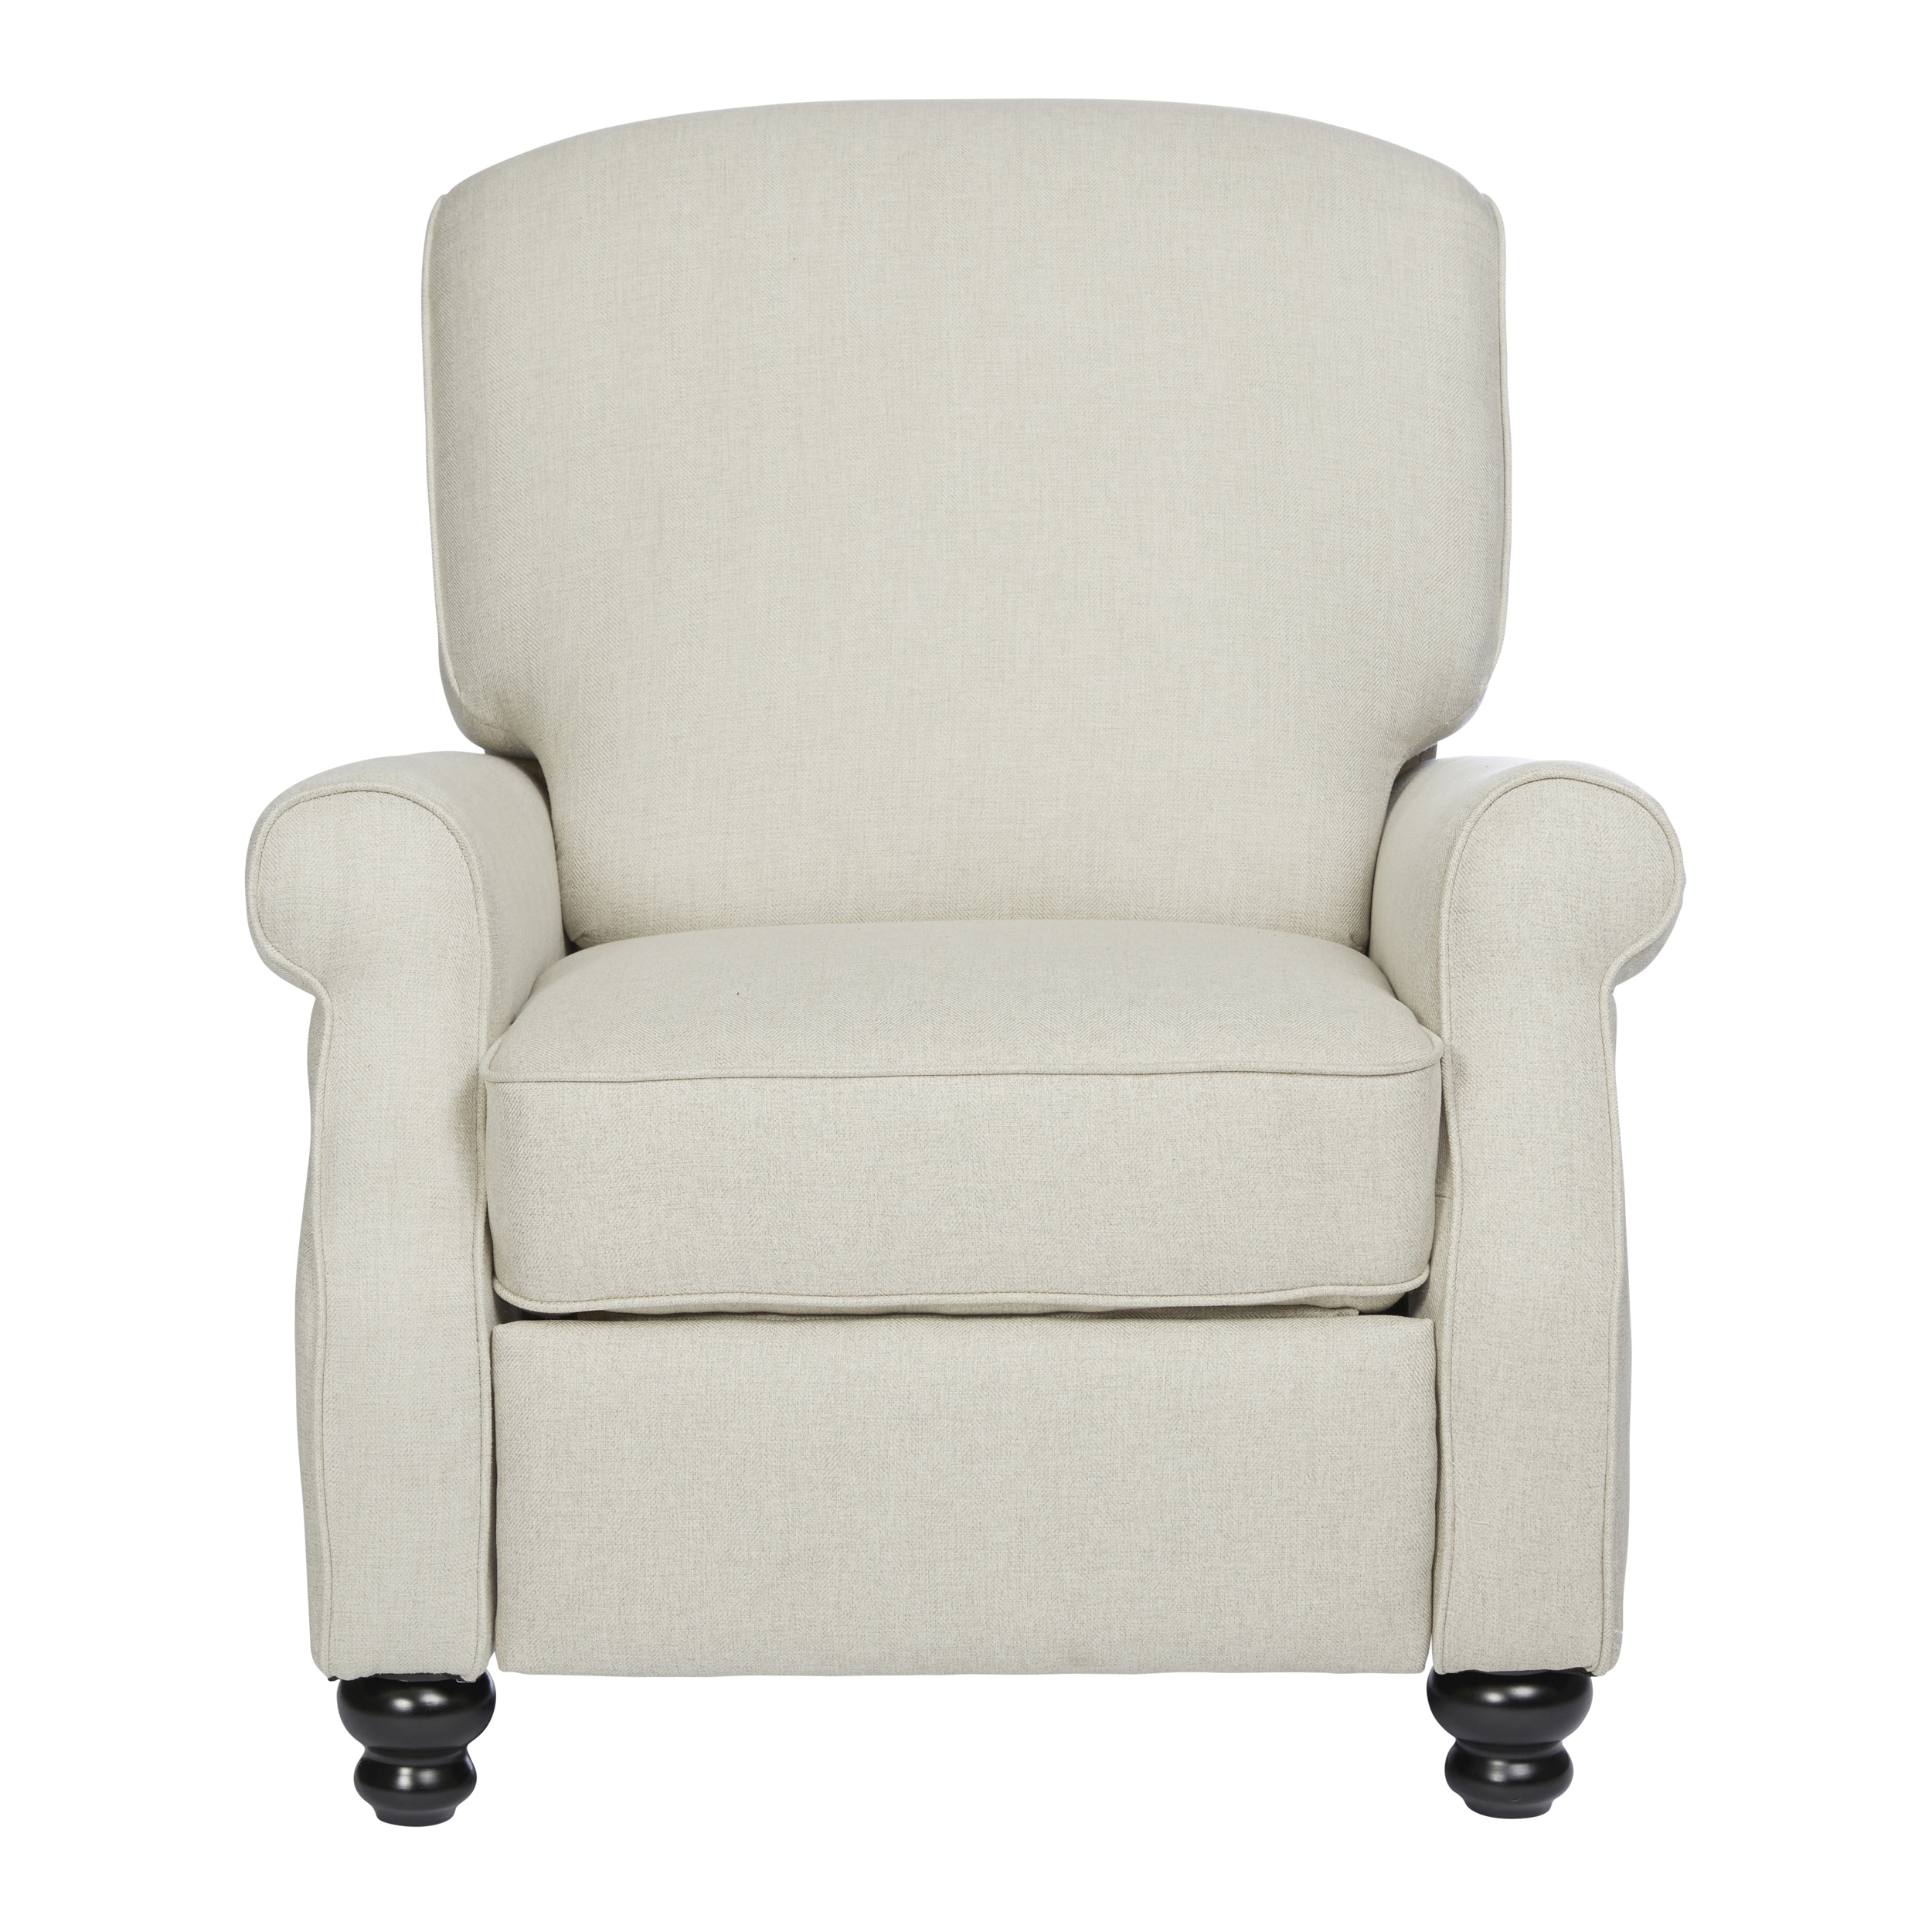 Shop ProLounger Tan Herringbone Push Back Recliner Chair   Free Shipping  Today   Overstock.com   18152649